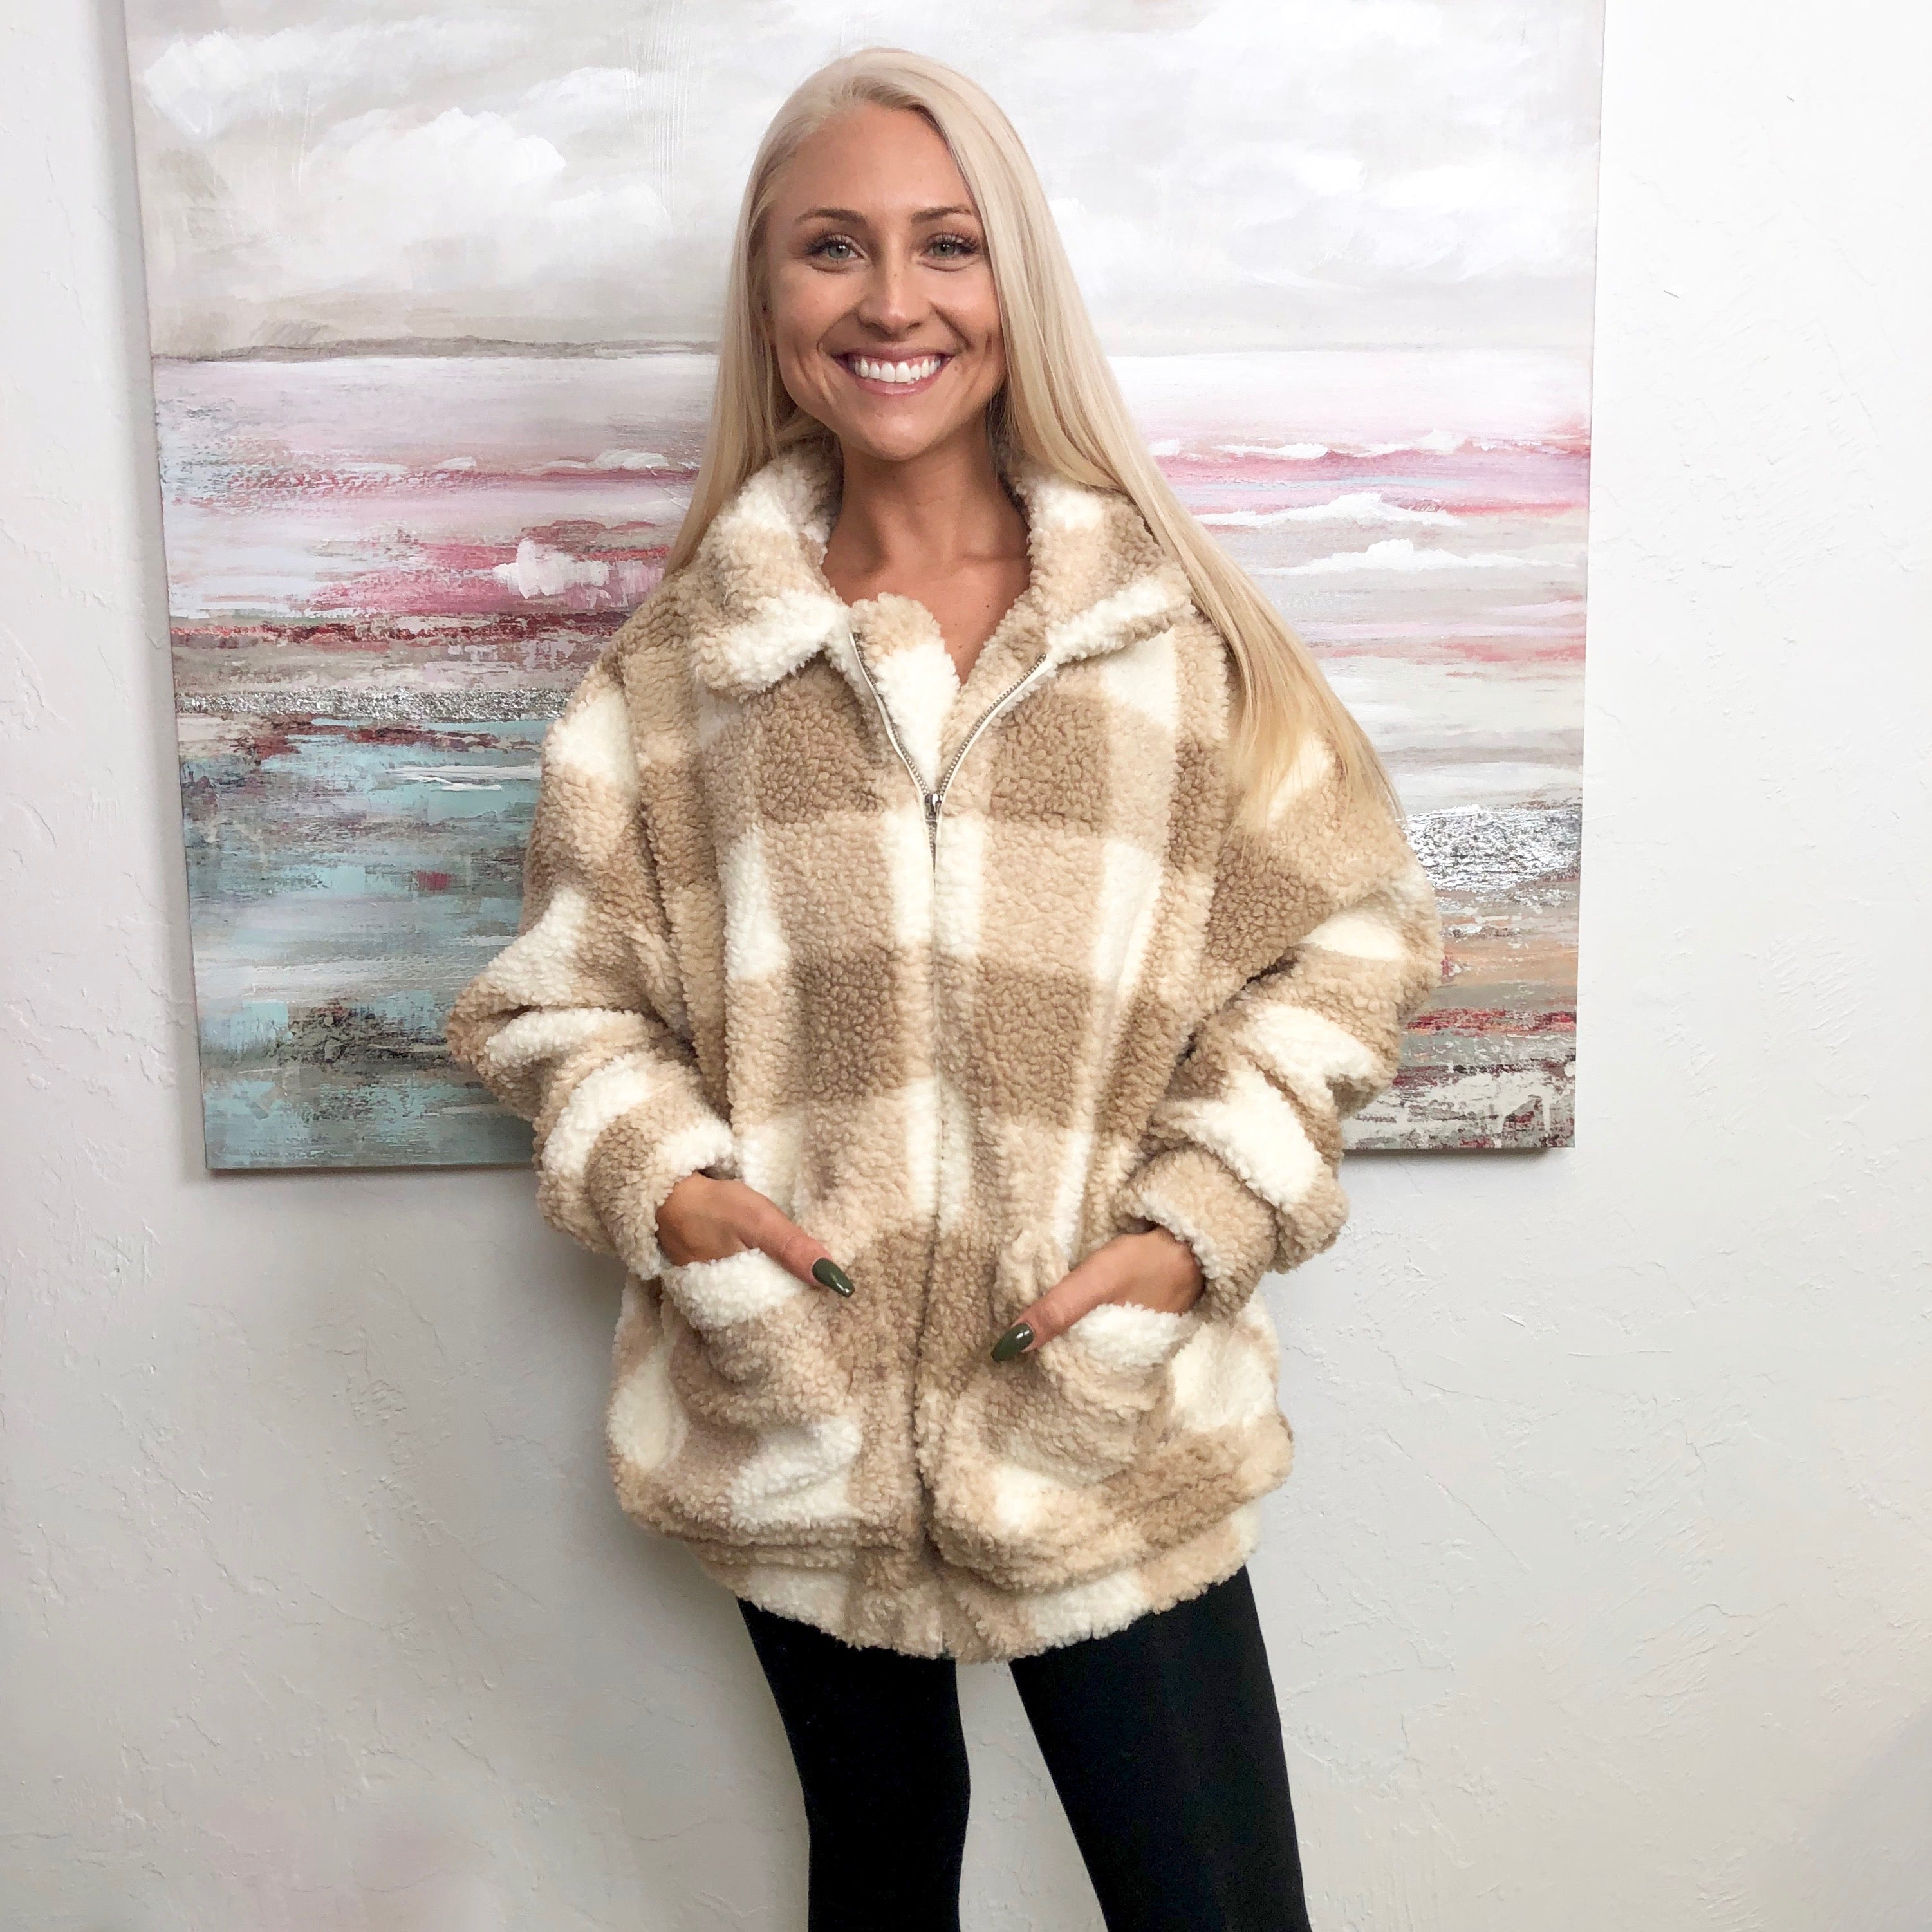 Monogram Plaid Teddy Bear Jacket